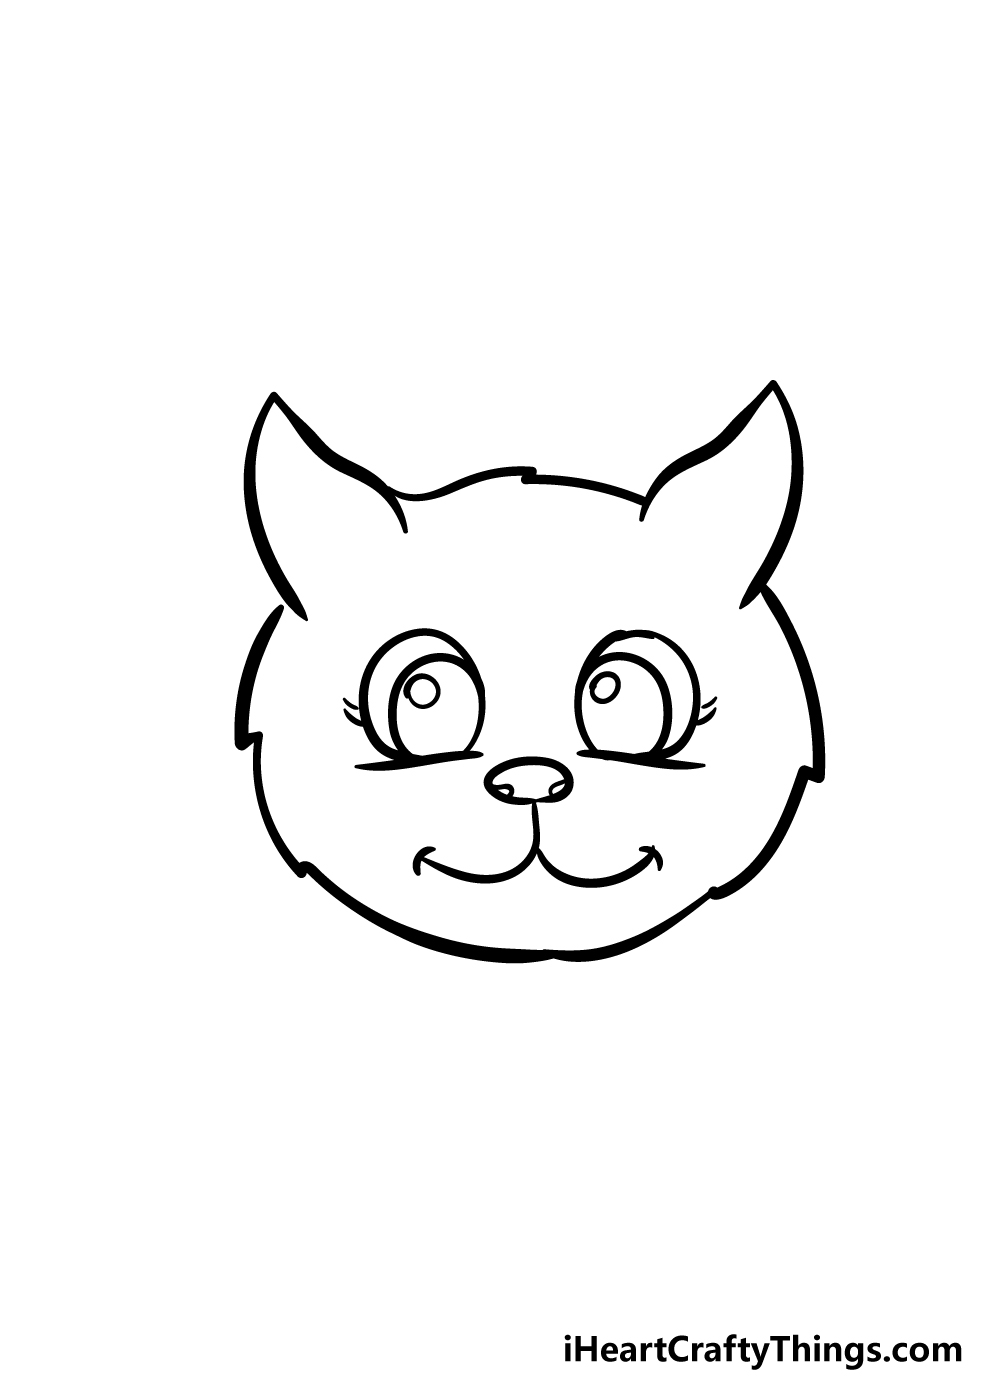 cat face drawing step 6